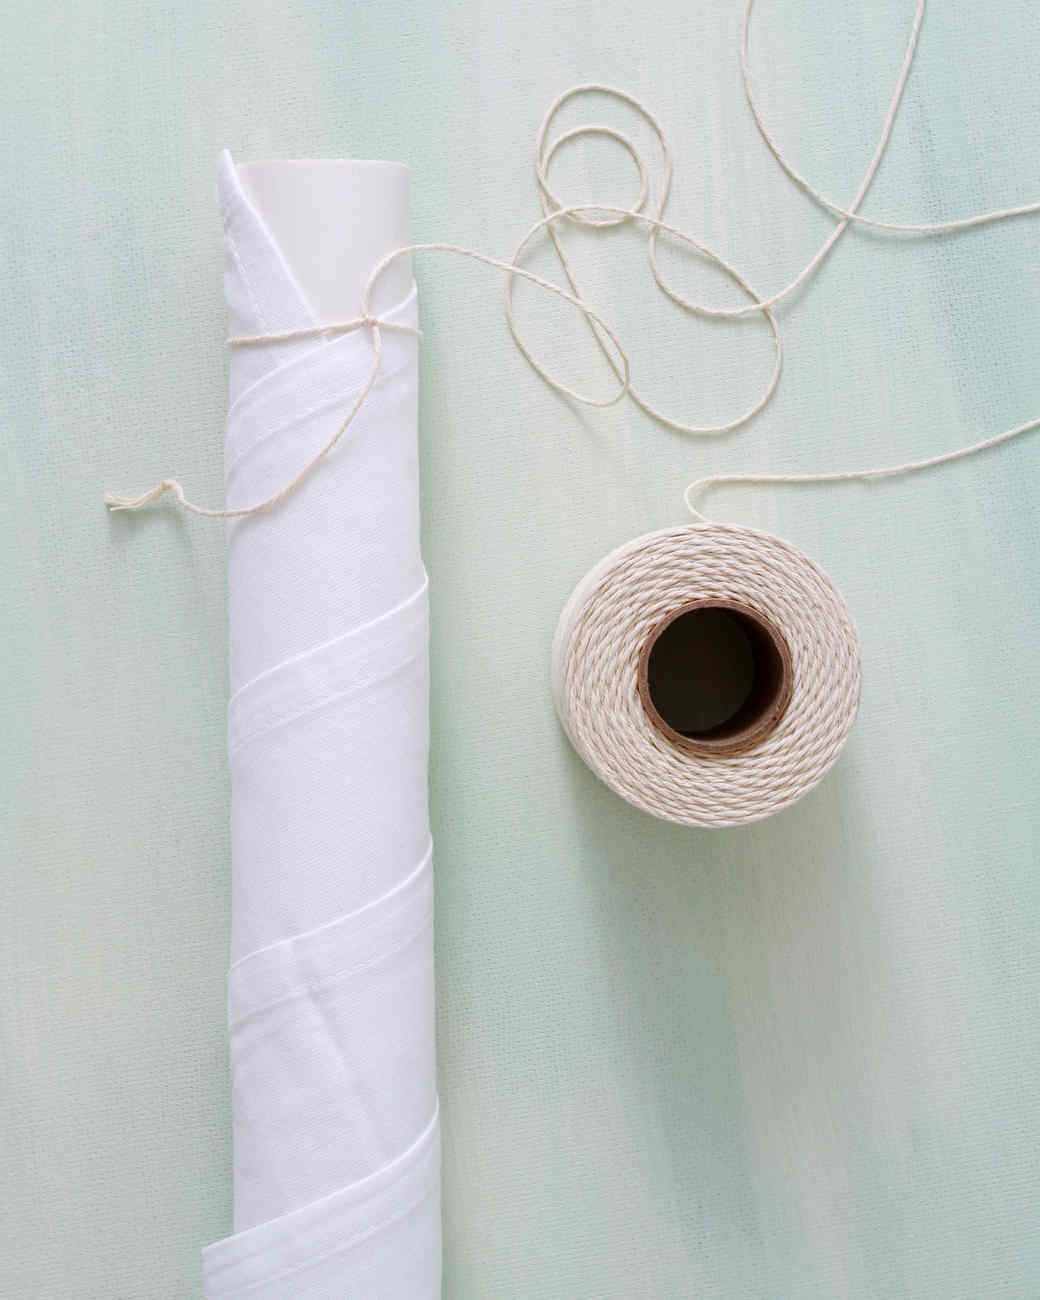 twine tied on fabric wrapped pole